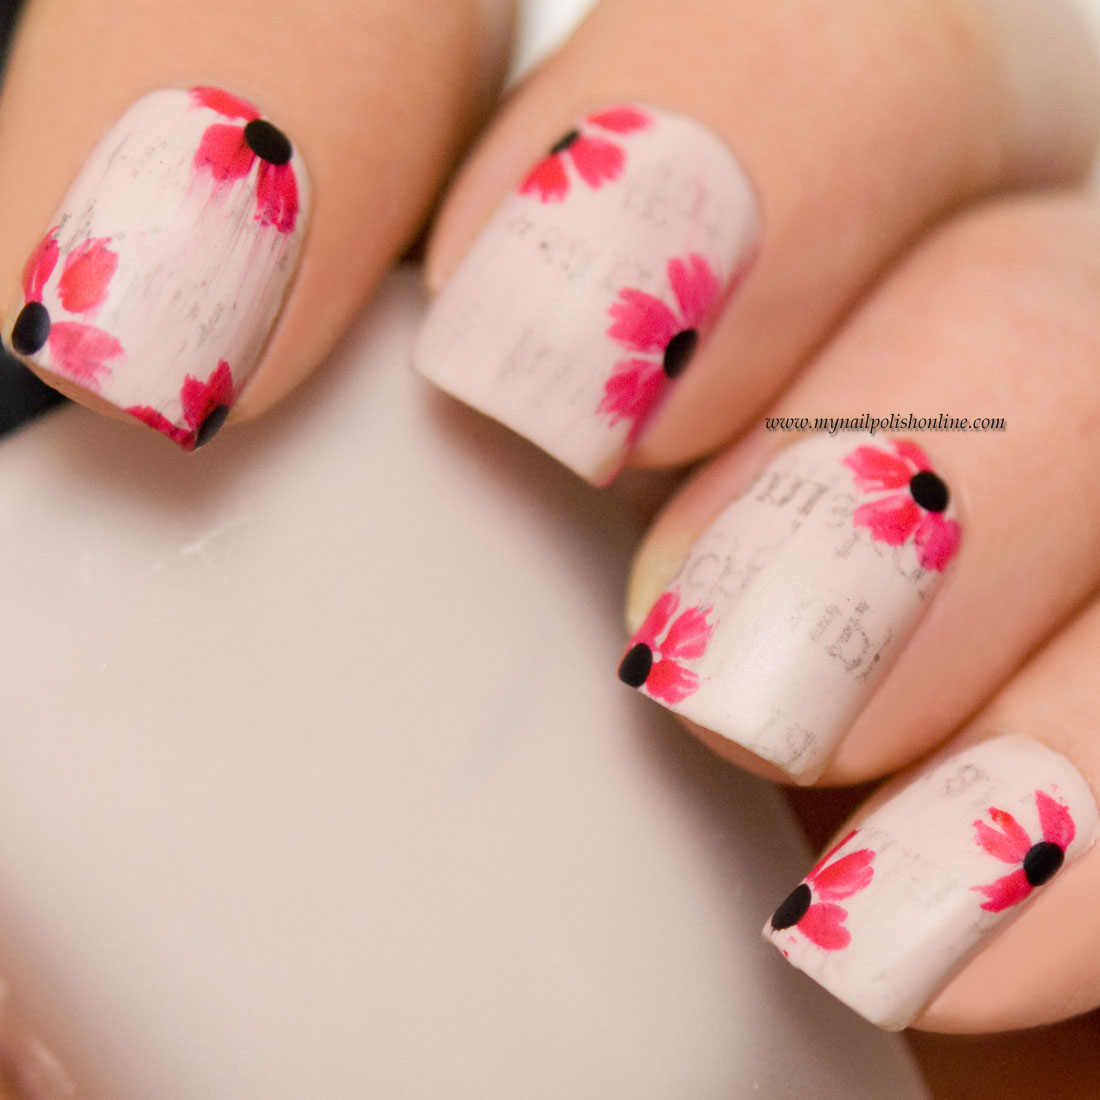 Amazing How To Newspaper Nails Festooning - Nail Art Ideas ...